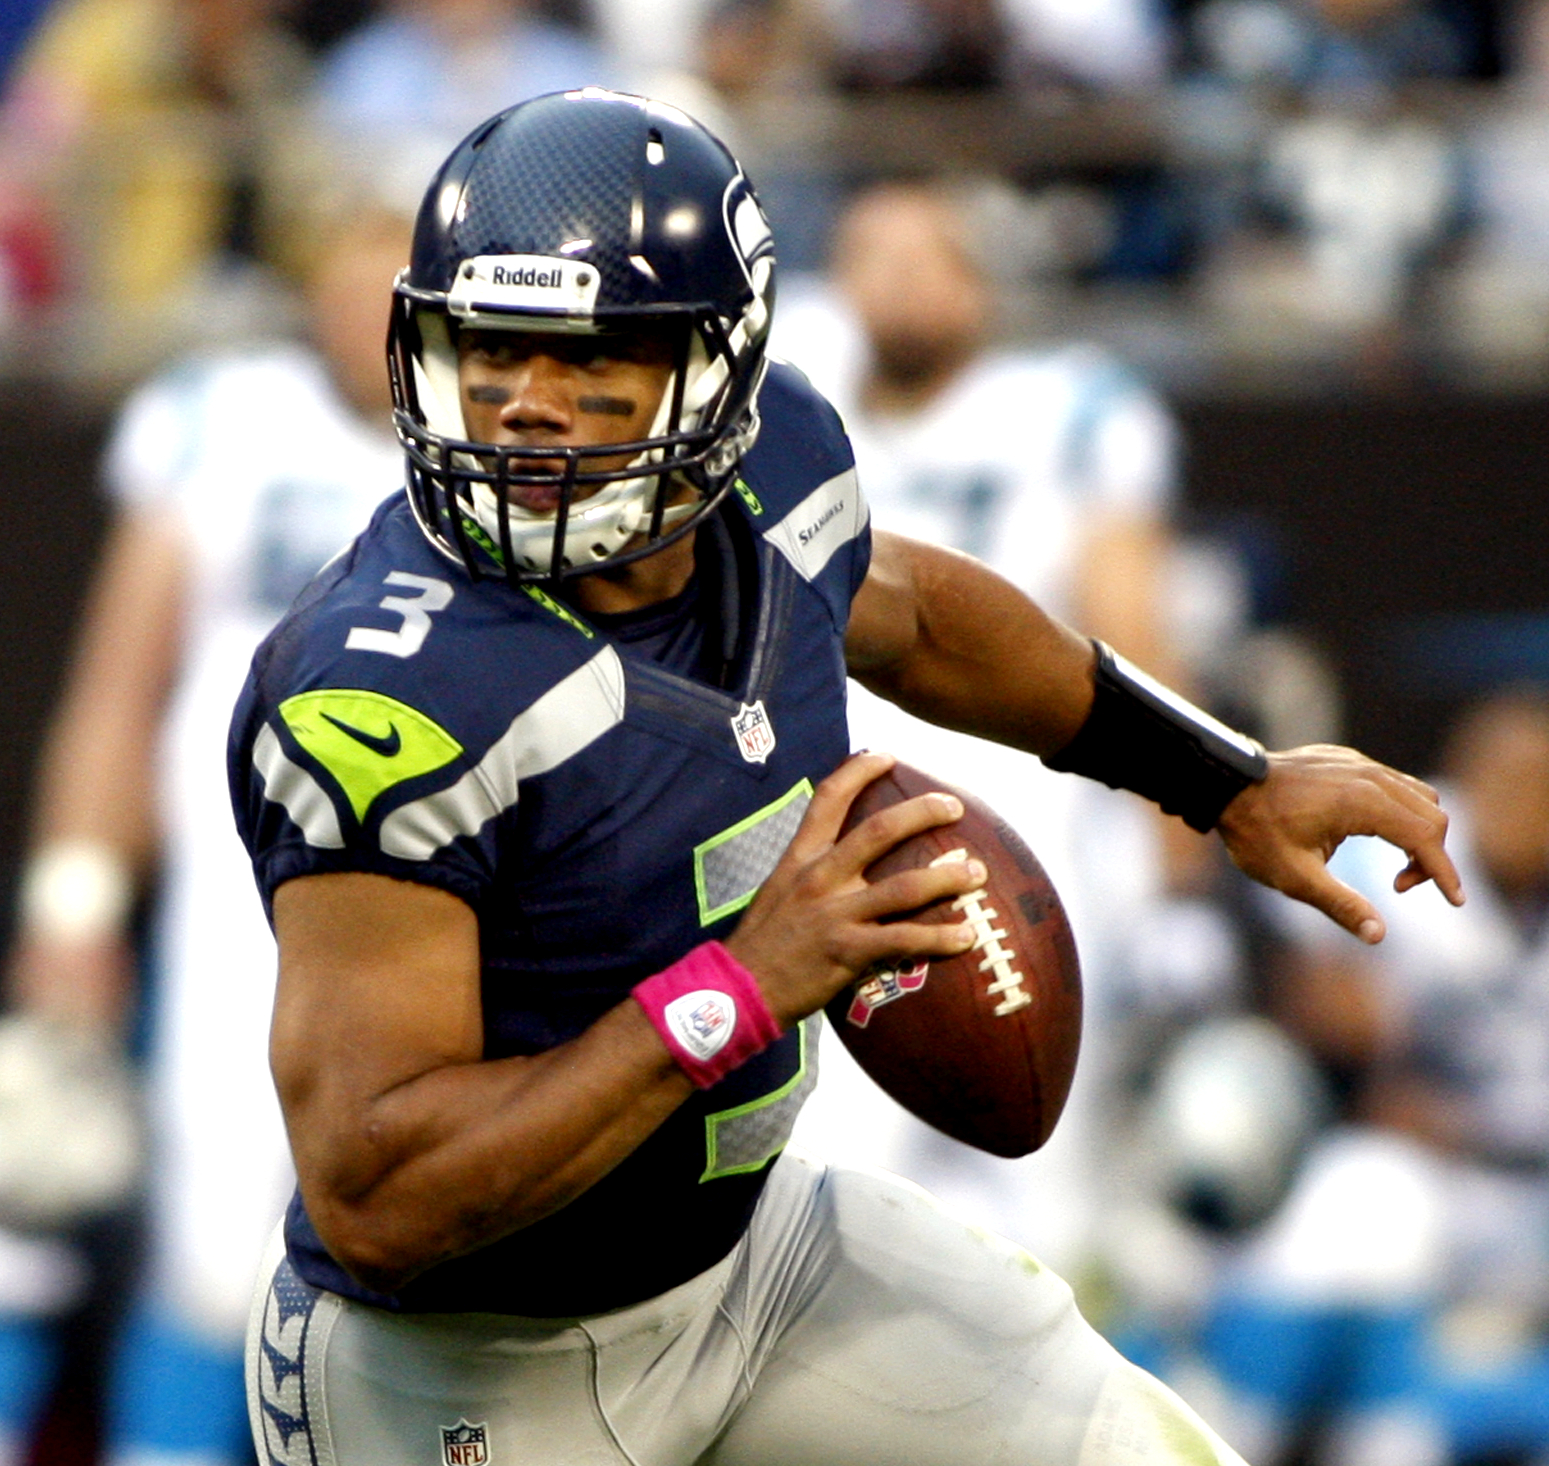 russell wilson wallpapers high quality download free